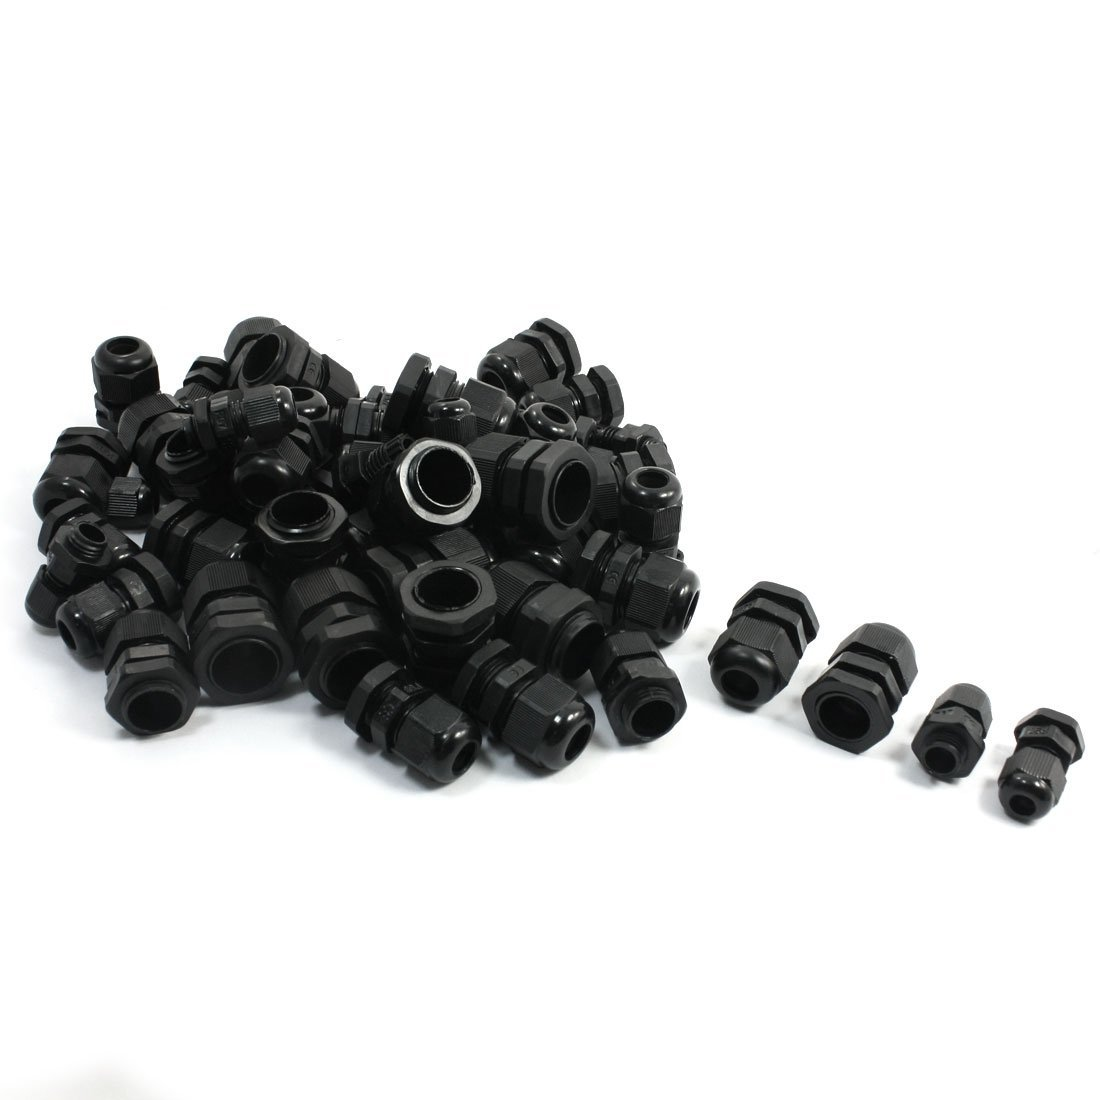 50PCS PG7 PG9 PG11 PG13.5 PG16 Black Plastic Waterproof Cable Glands удилище телескопическое onlitop rapide 6 м 10 40 г